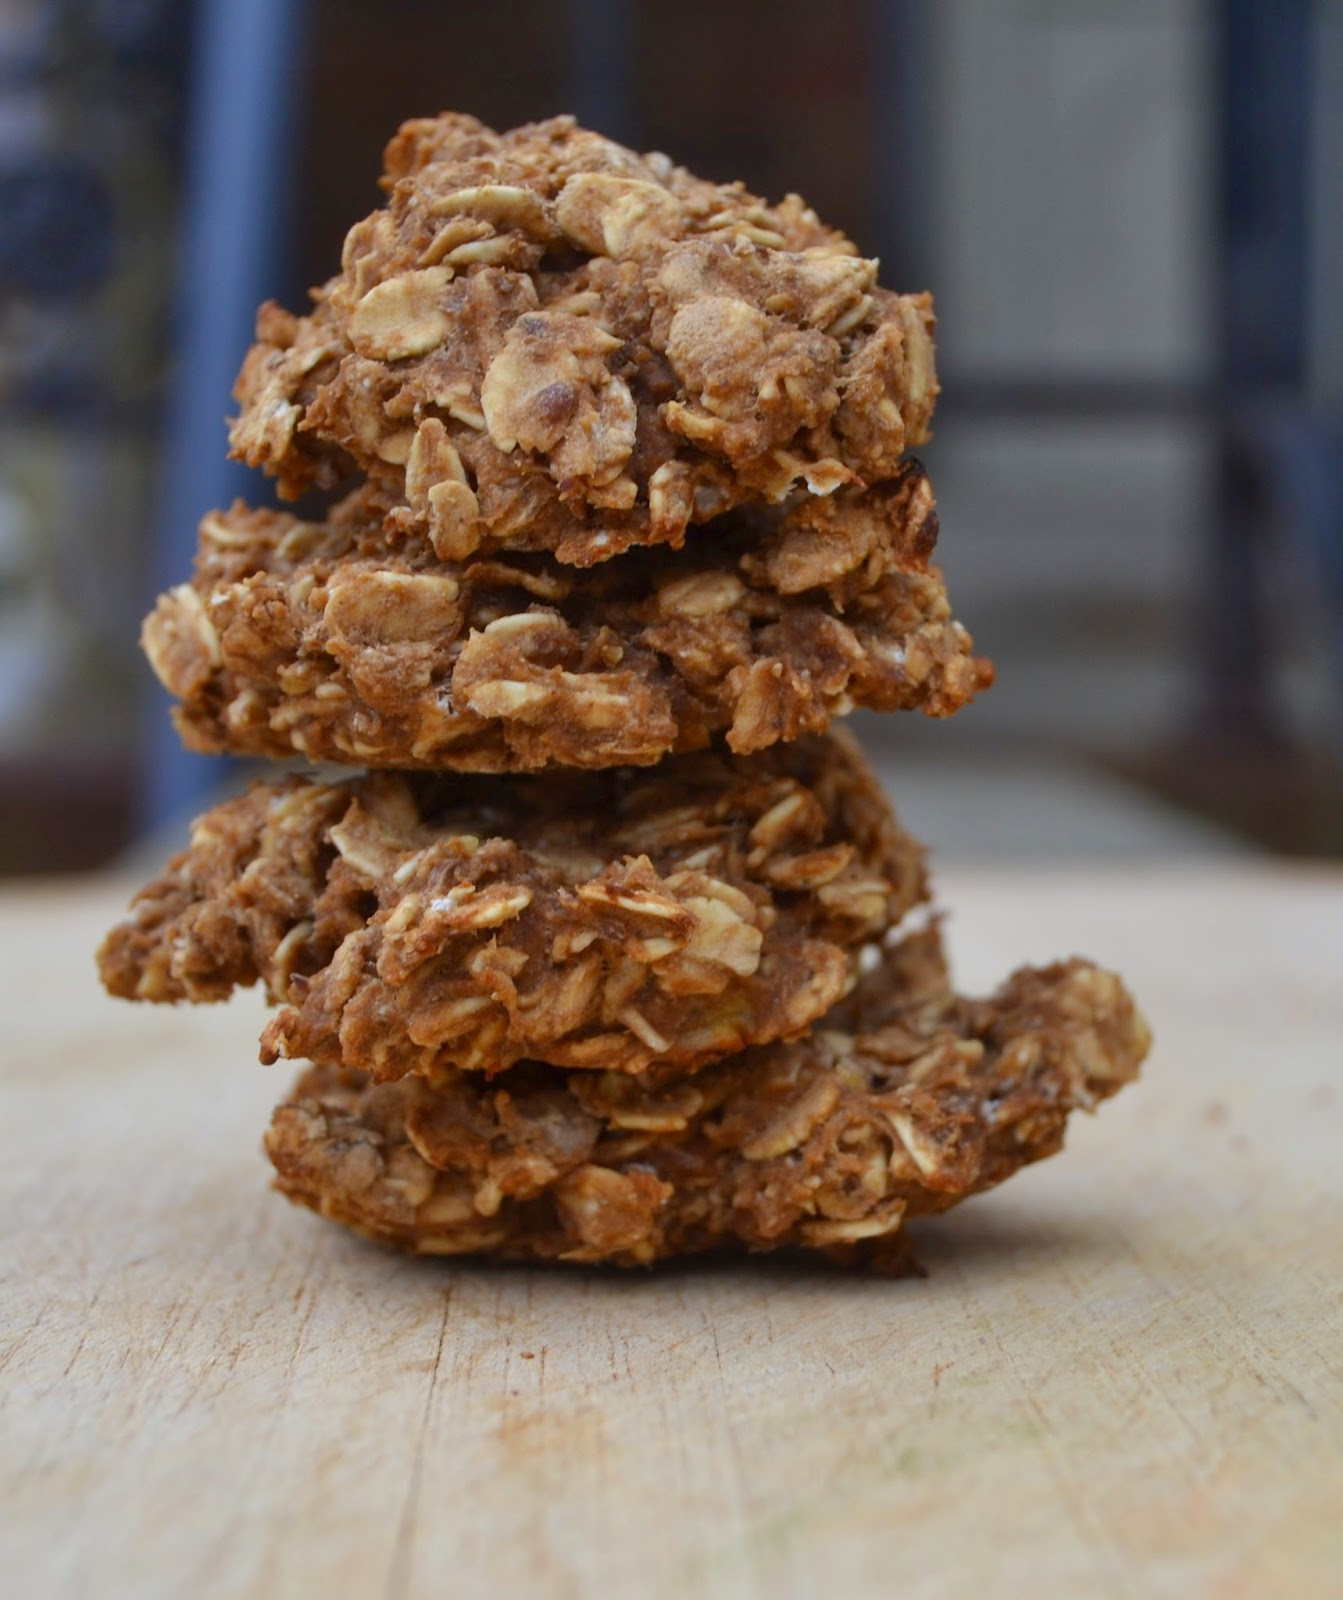 Healthy Banana Peanut Butter Cookies  Healthy Banana Chocolate Peanut Butter Cookies